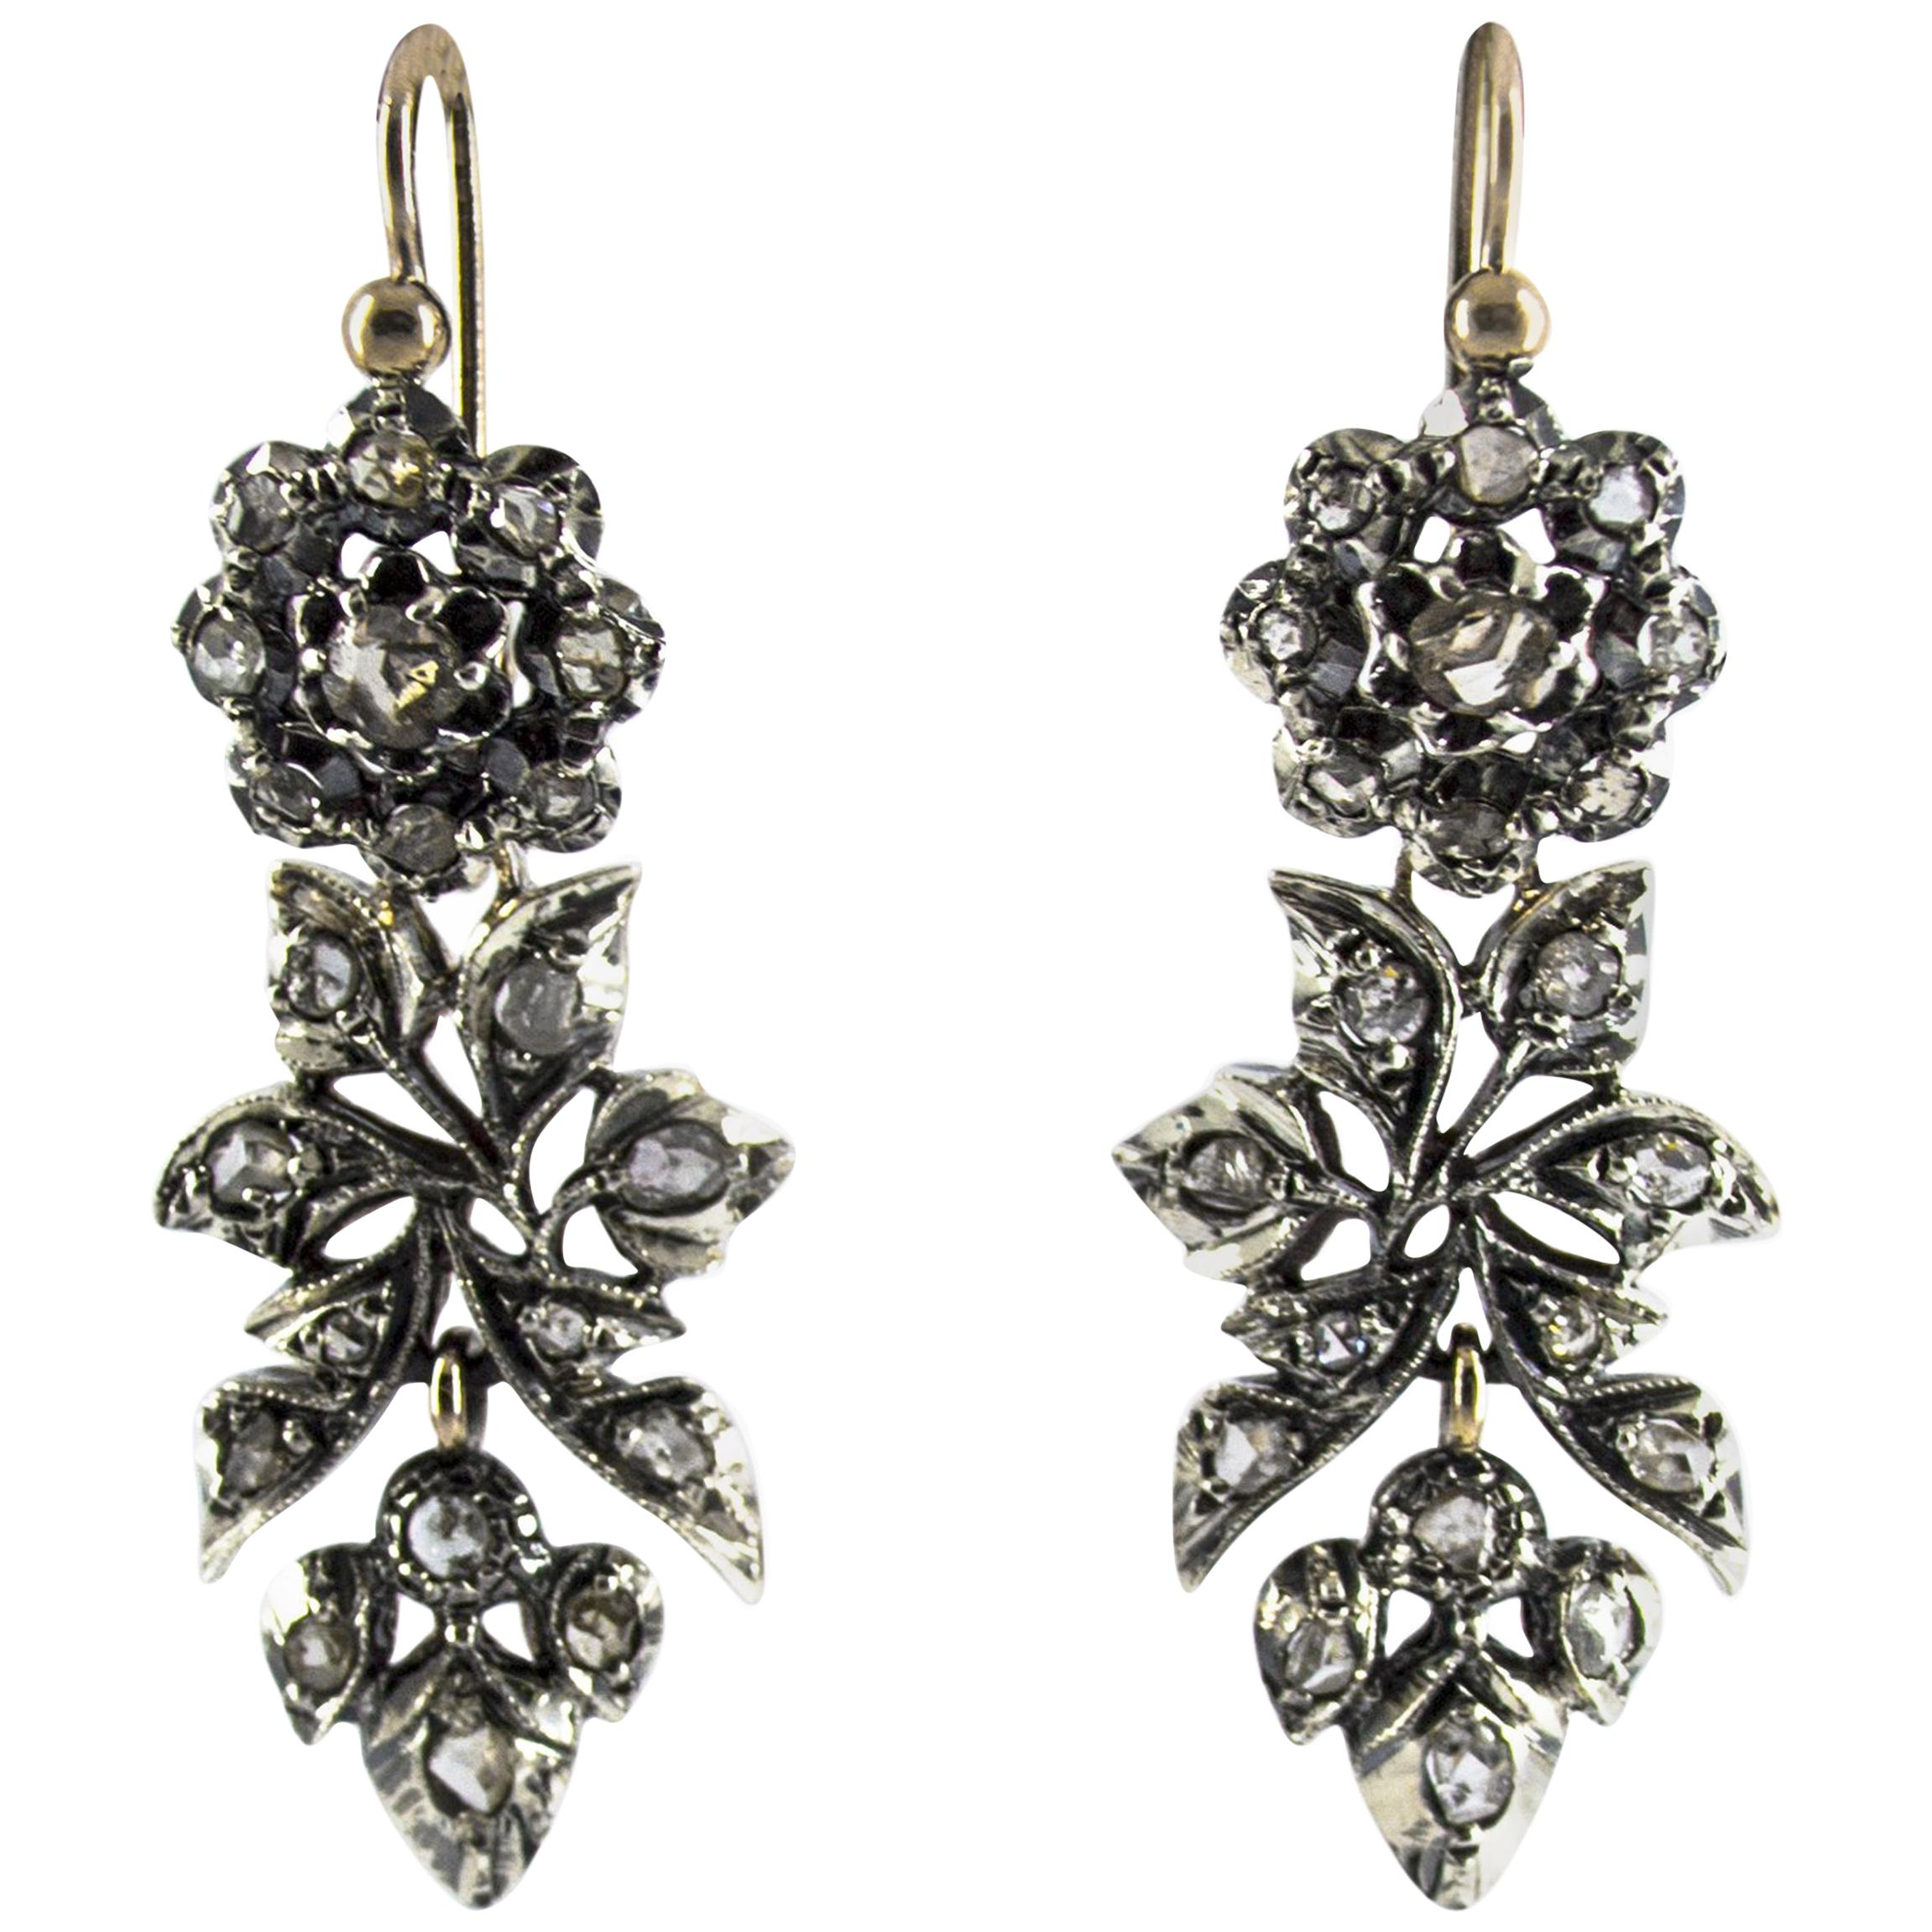 Renaissance 1.60 Carat White Rose Cut Diamond Yellow Gold Lever-Back Earrings